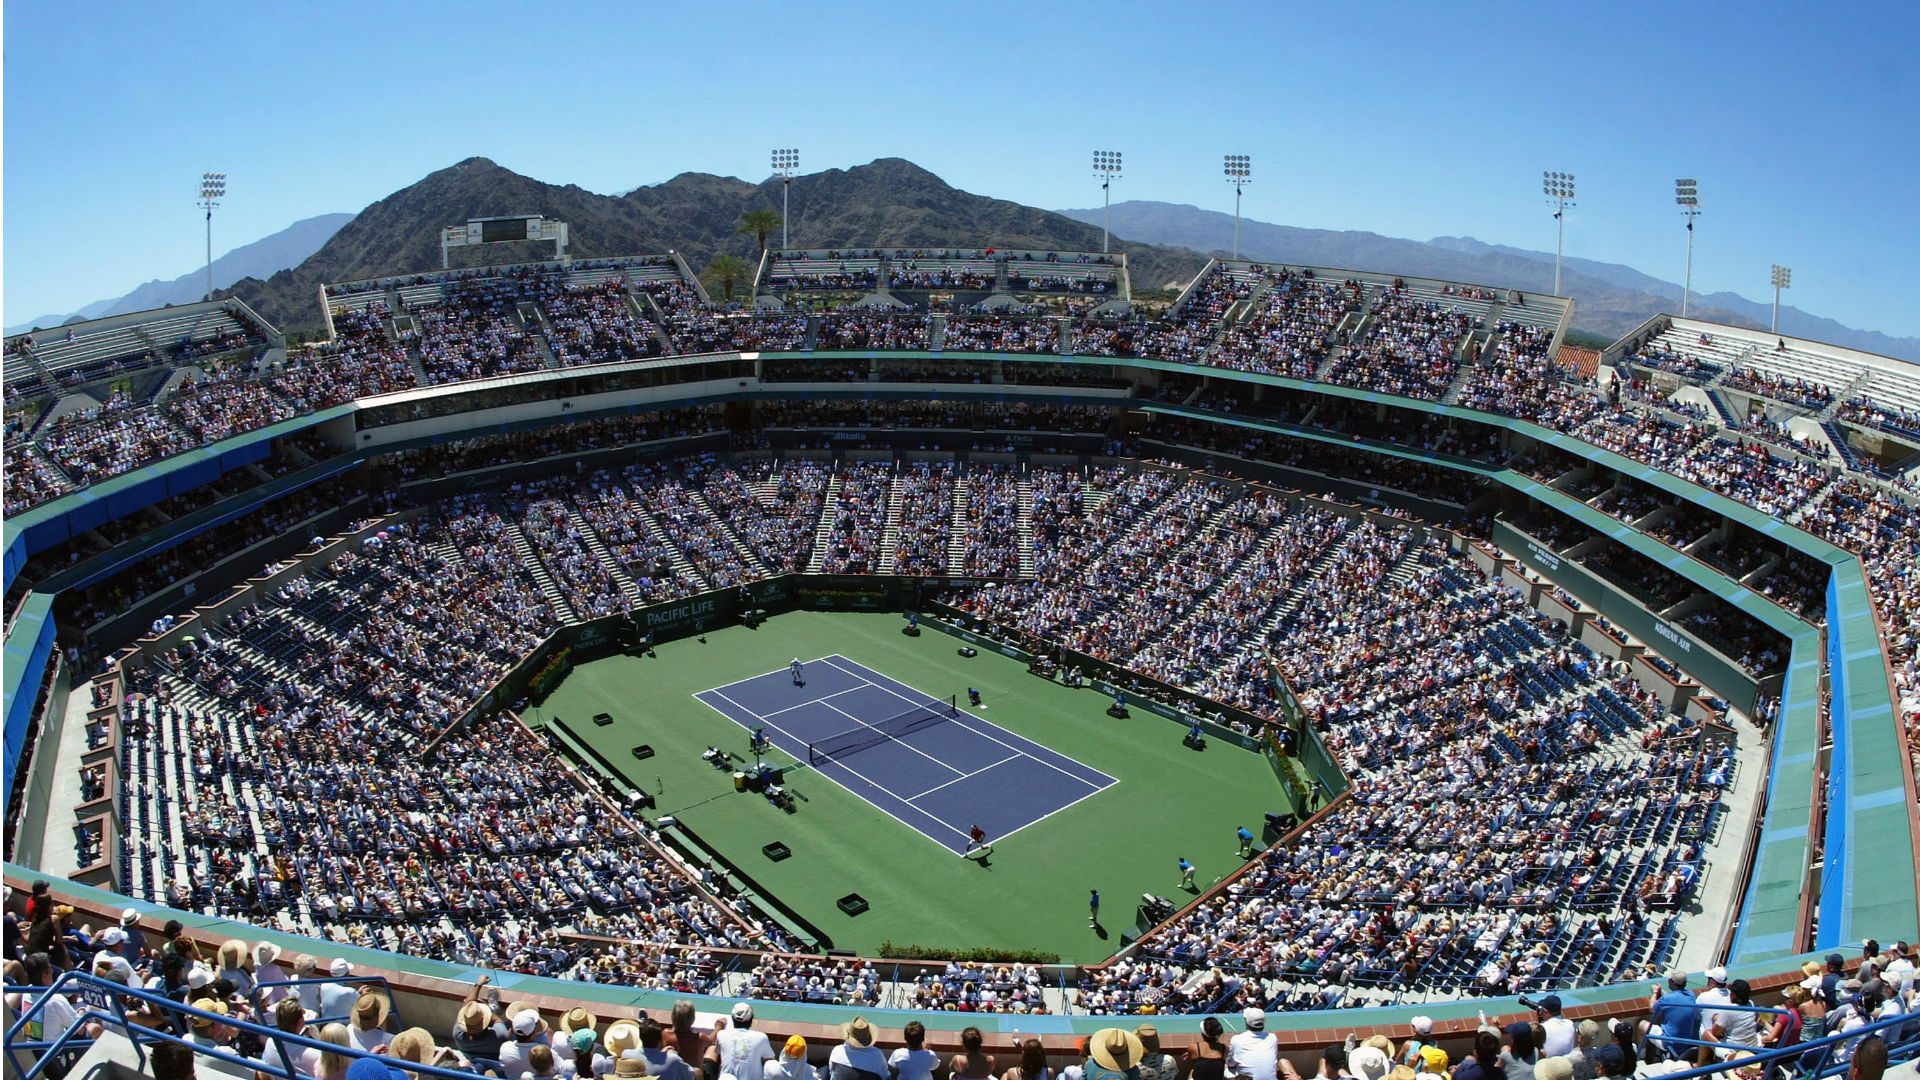 ... Indian Wells Tennis Garden Getty Ftr.jpeg